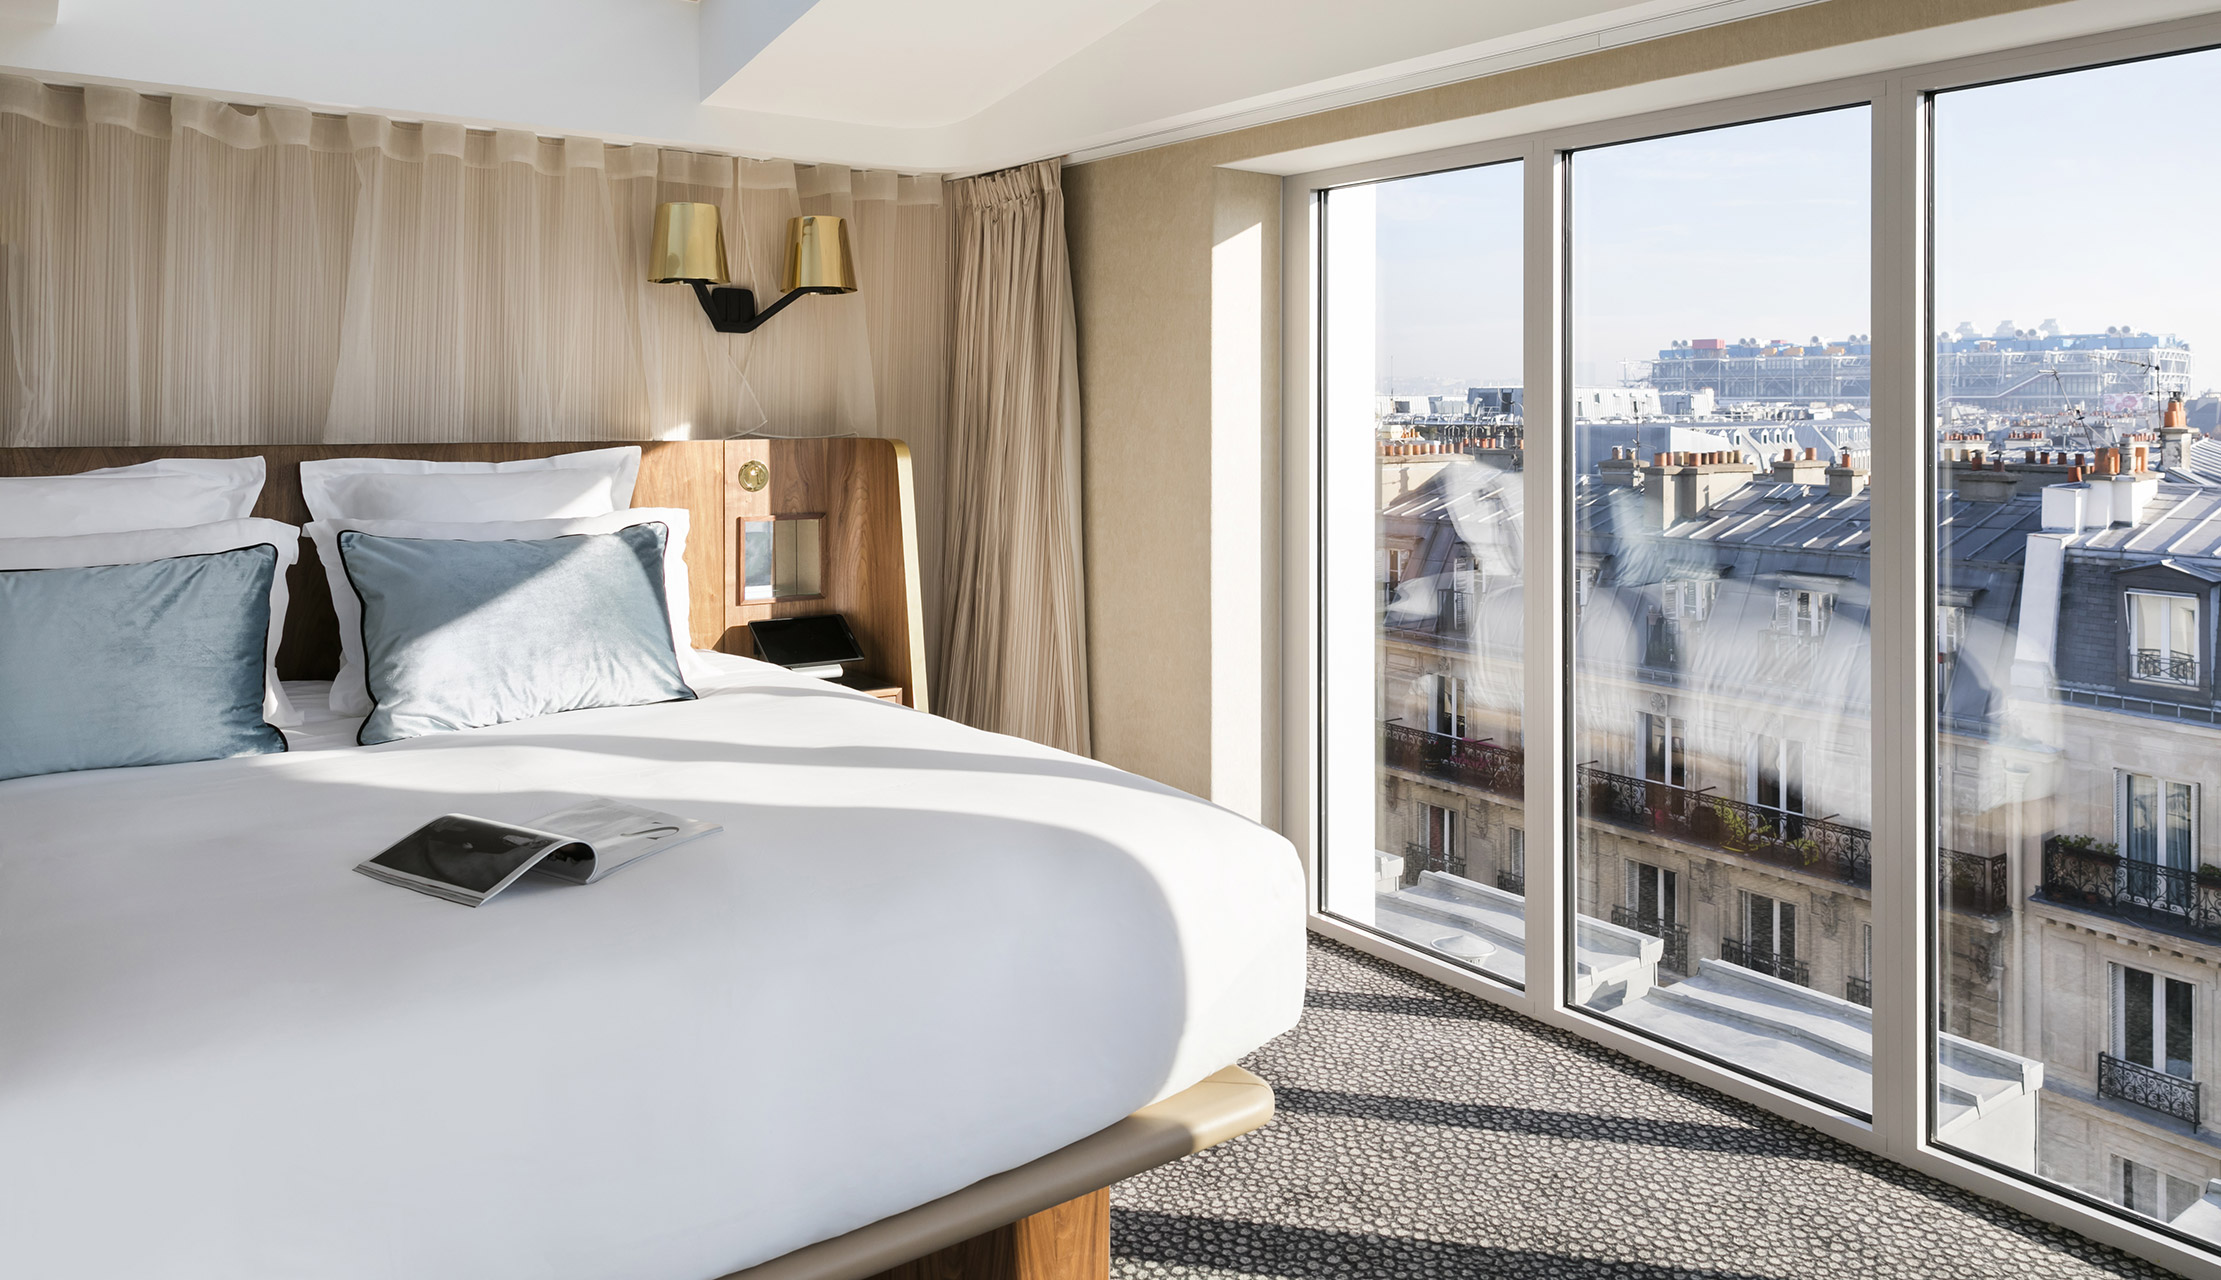 Maison Albar Hotels Le Pont-Neuf The Rooftop with a 180° view